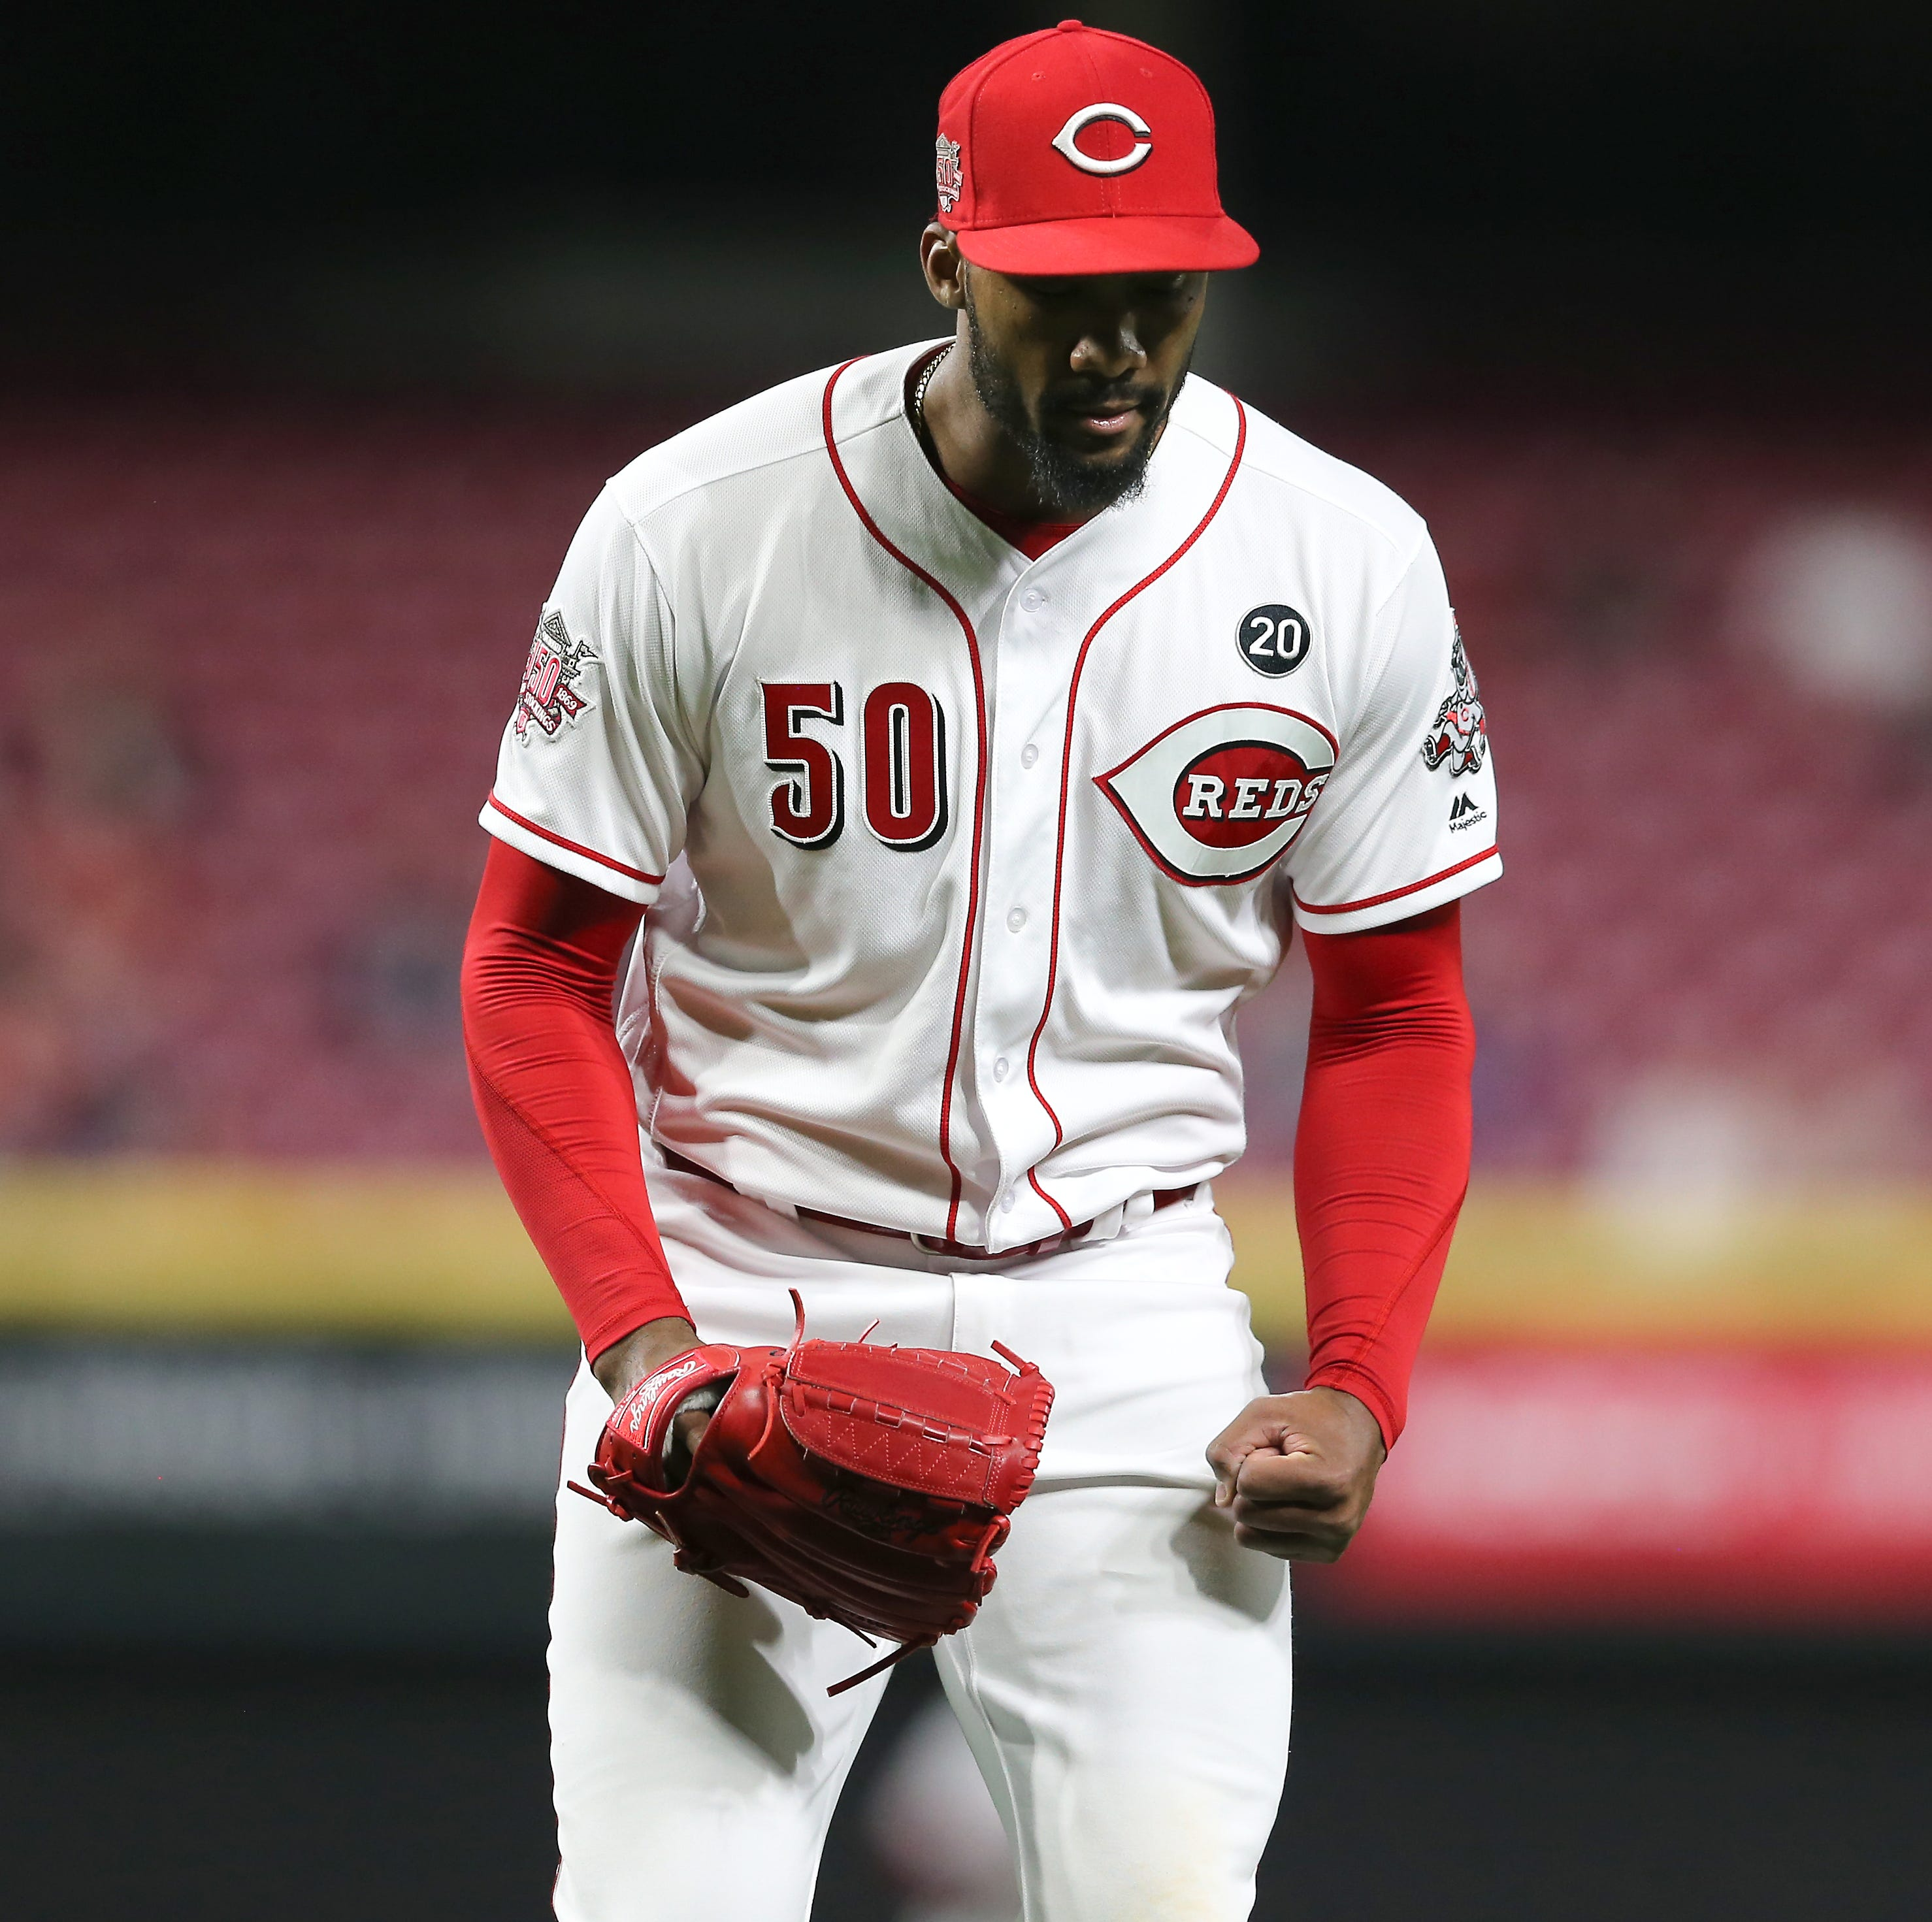 Amir Garrett, Joey Votto race off field during Reds-Mets after final out of inning